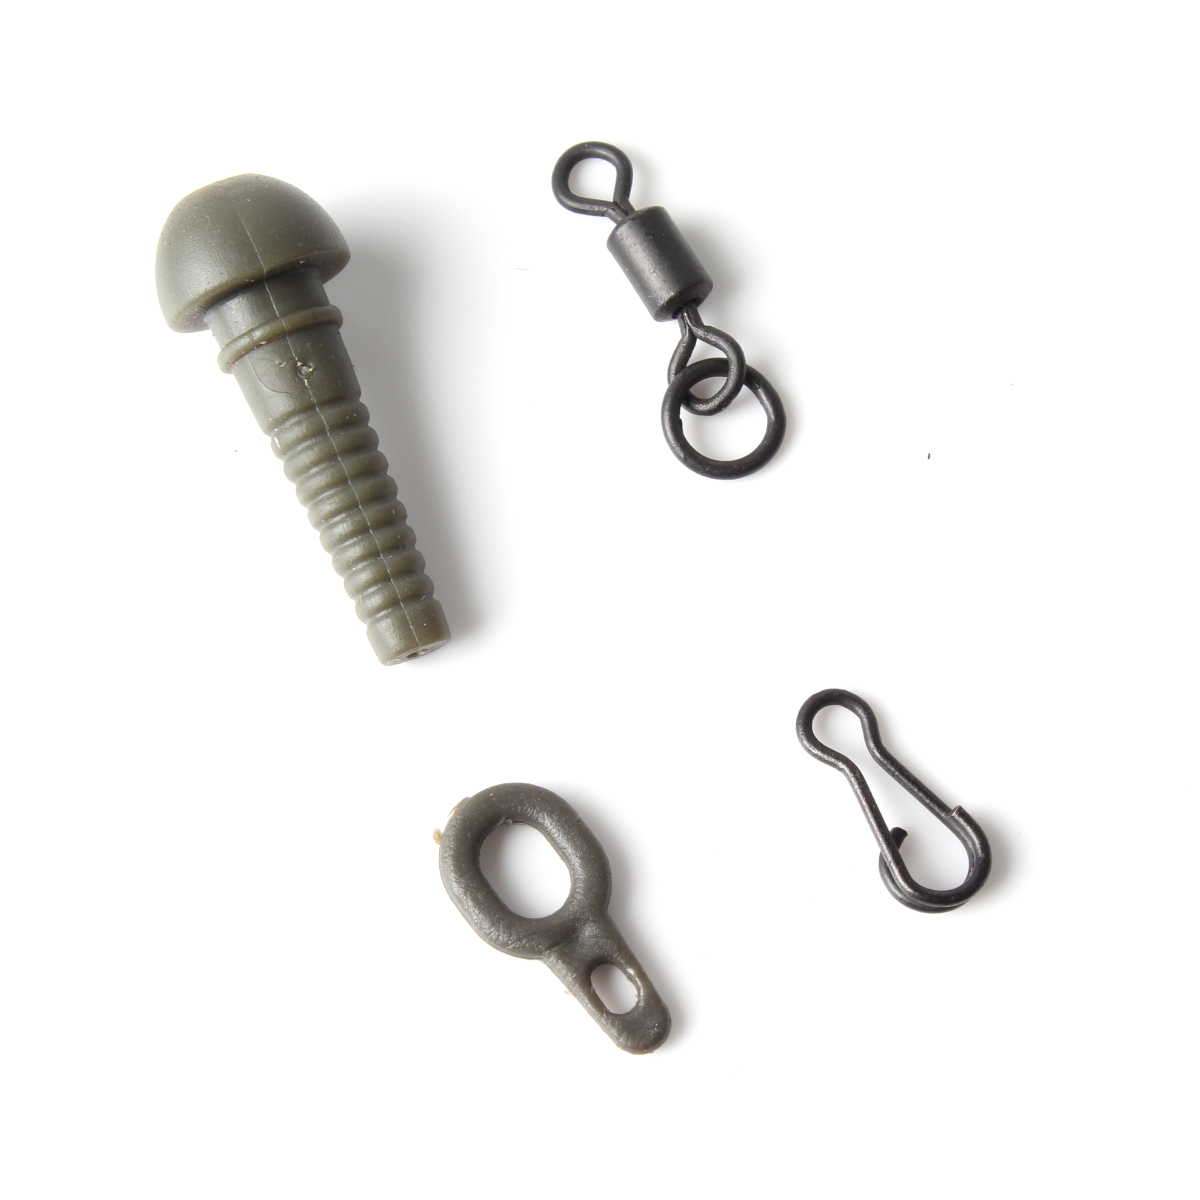 carp fishing terminal rigs set fishing safety sleeve lead rolling swivels run ring hook snap